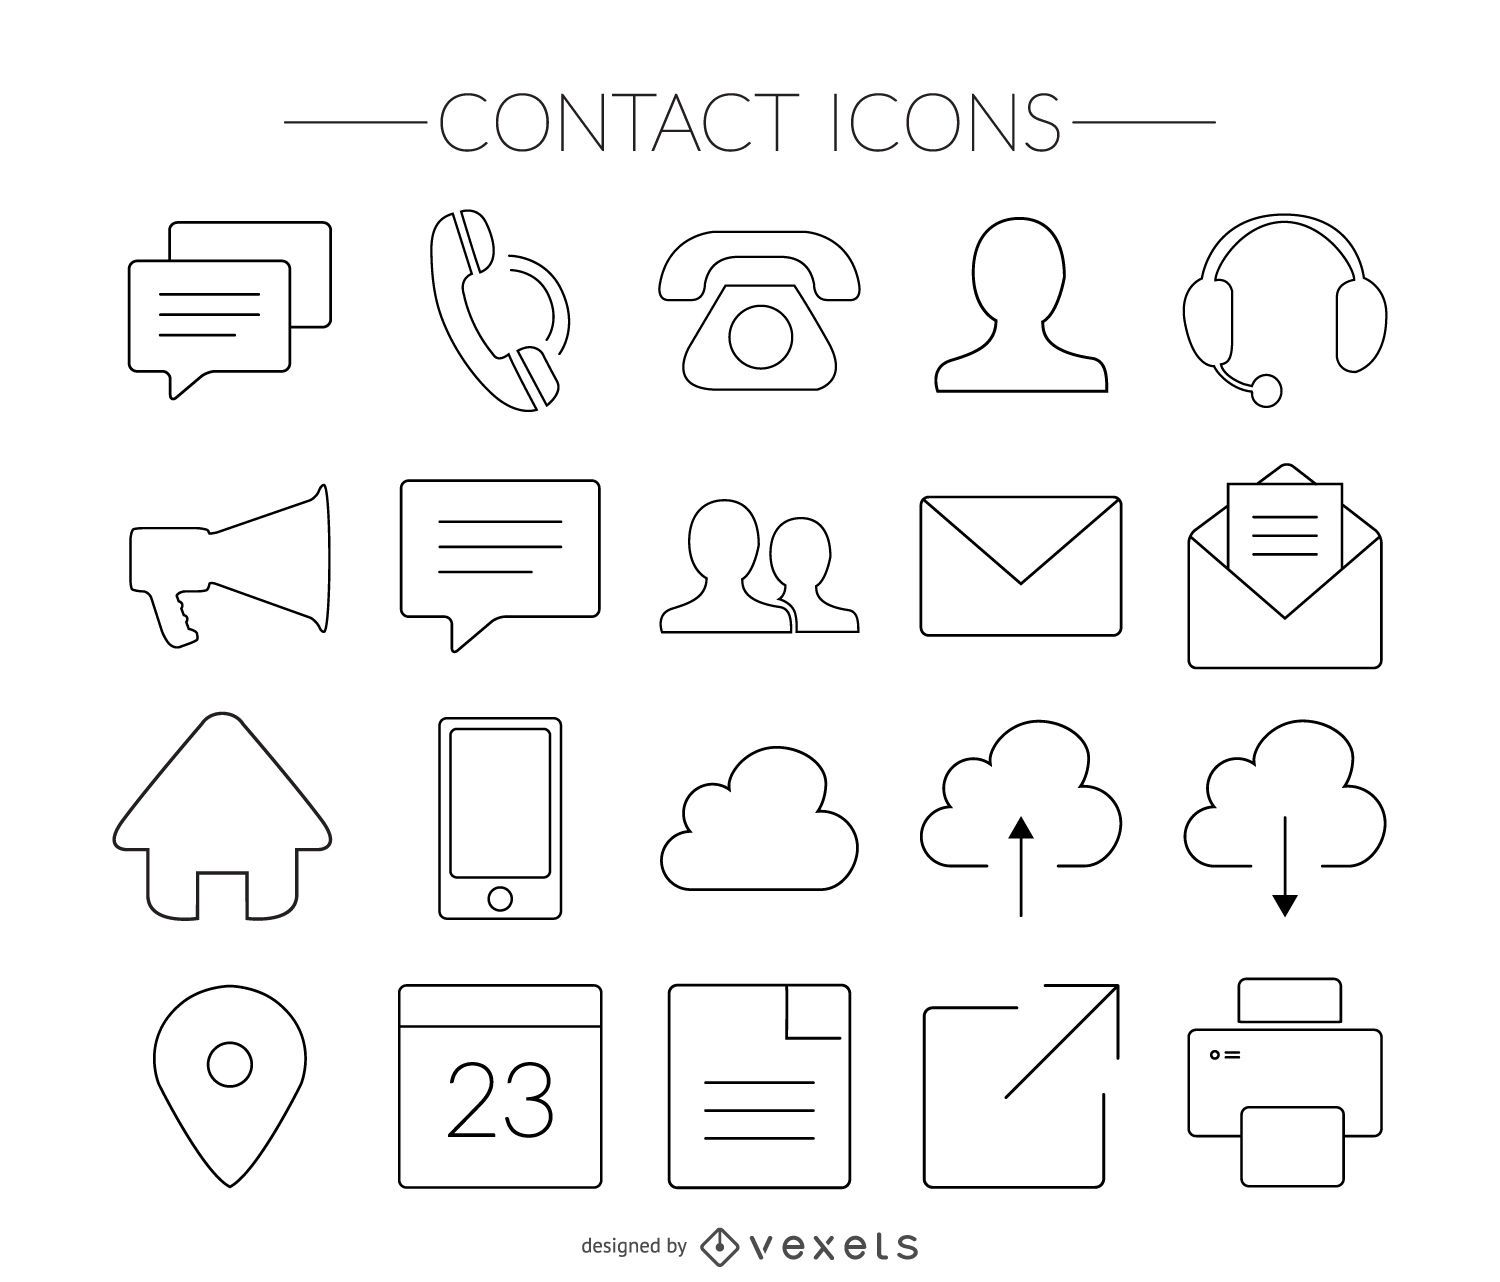 Stroke contact icons set